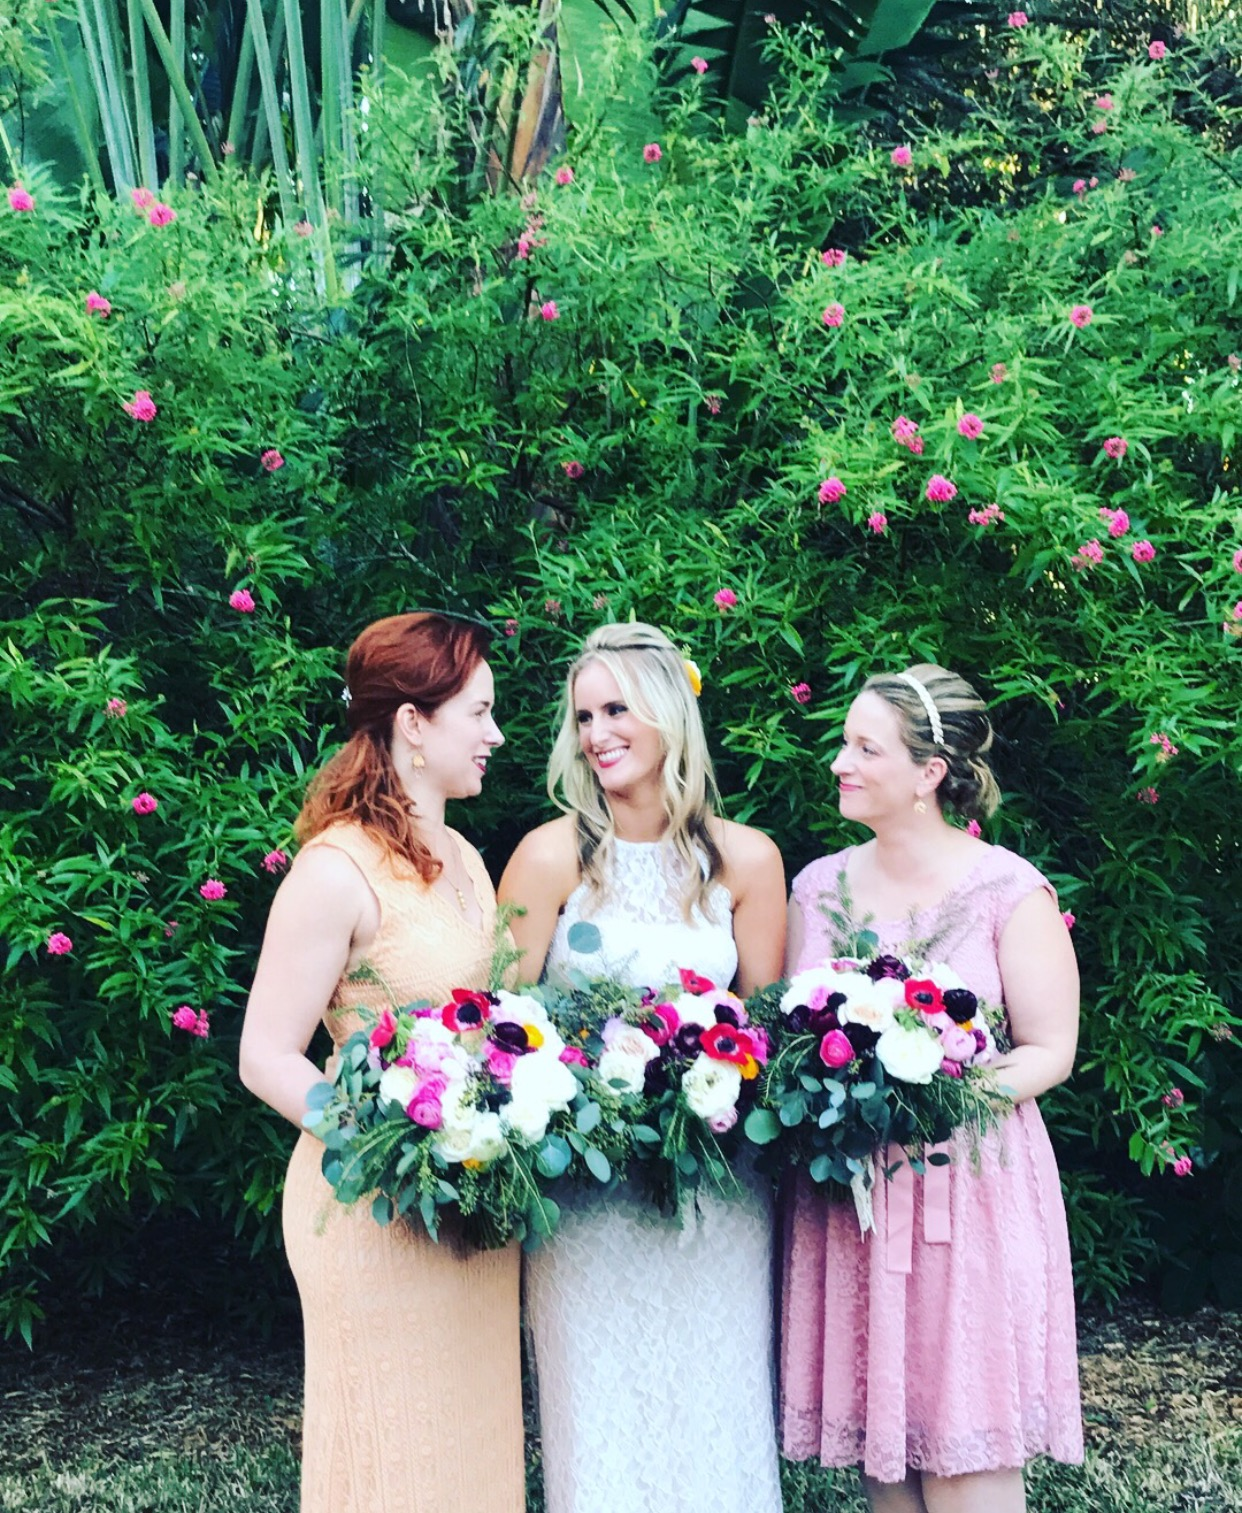 Wedding Flowers | The Flower Gallery | Tampa's Best Florist